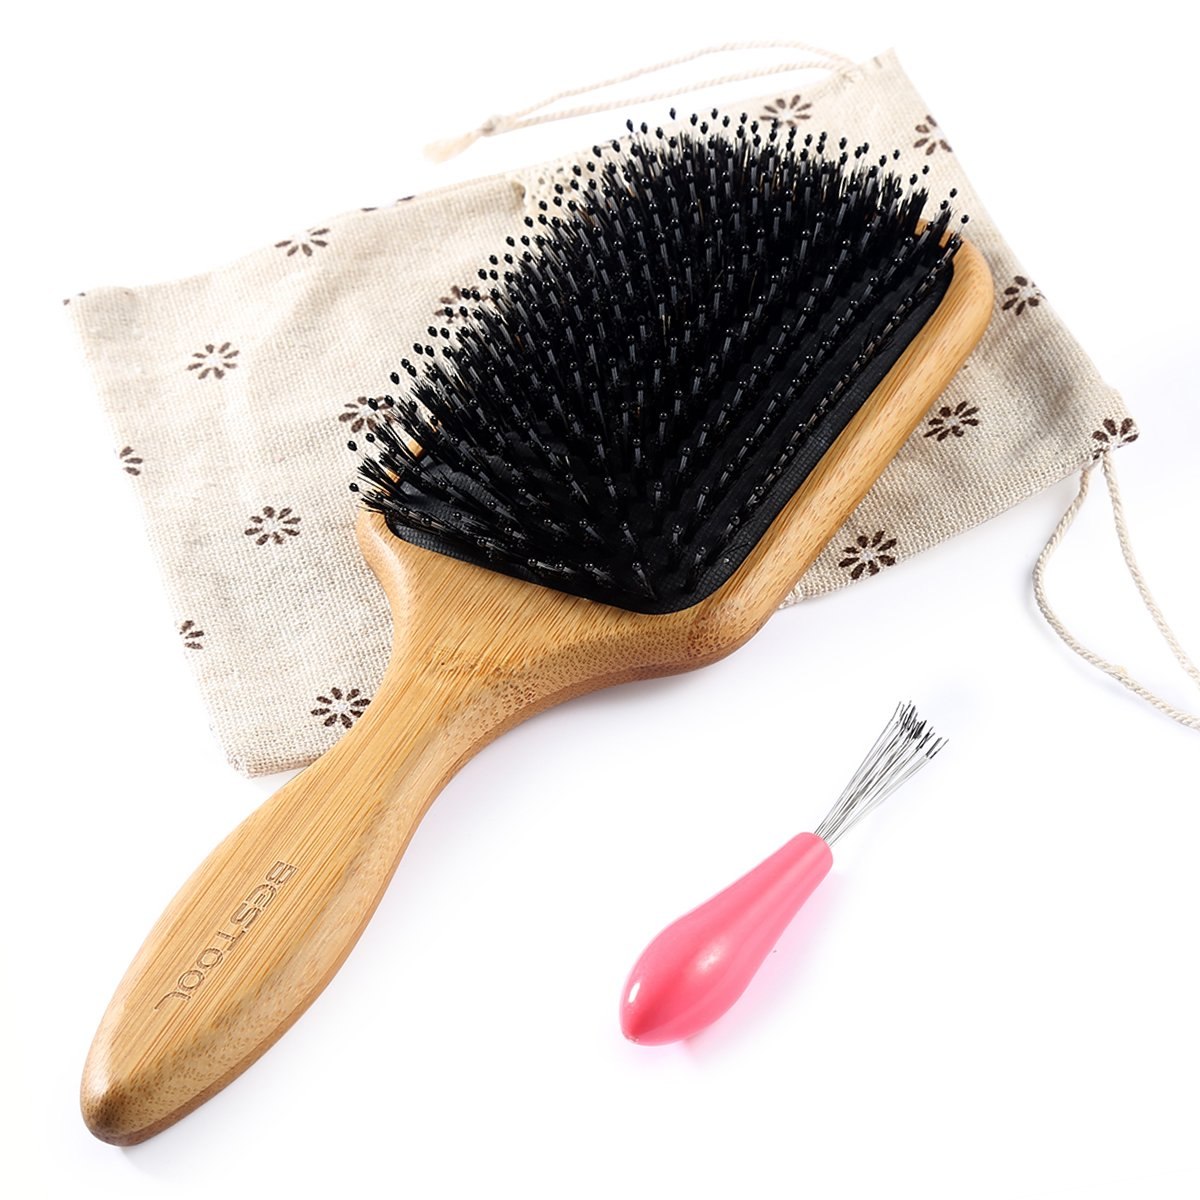 BESTOOL Hair Brush-Natural Boar Bristle Hair Brush with Added Nylon Pins, Bamboo Large Paddle Brush, Detangling and Adding Shine Hair Brush Benefit for Women Men and Kid | All hair Types